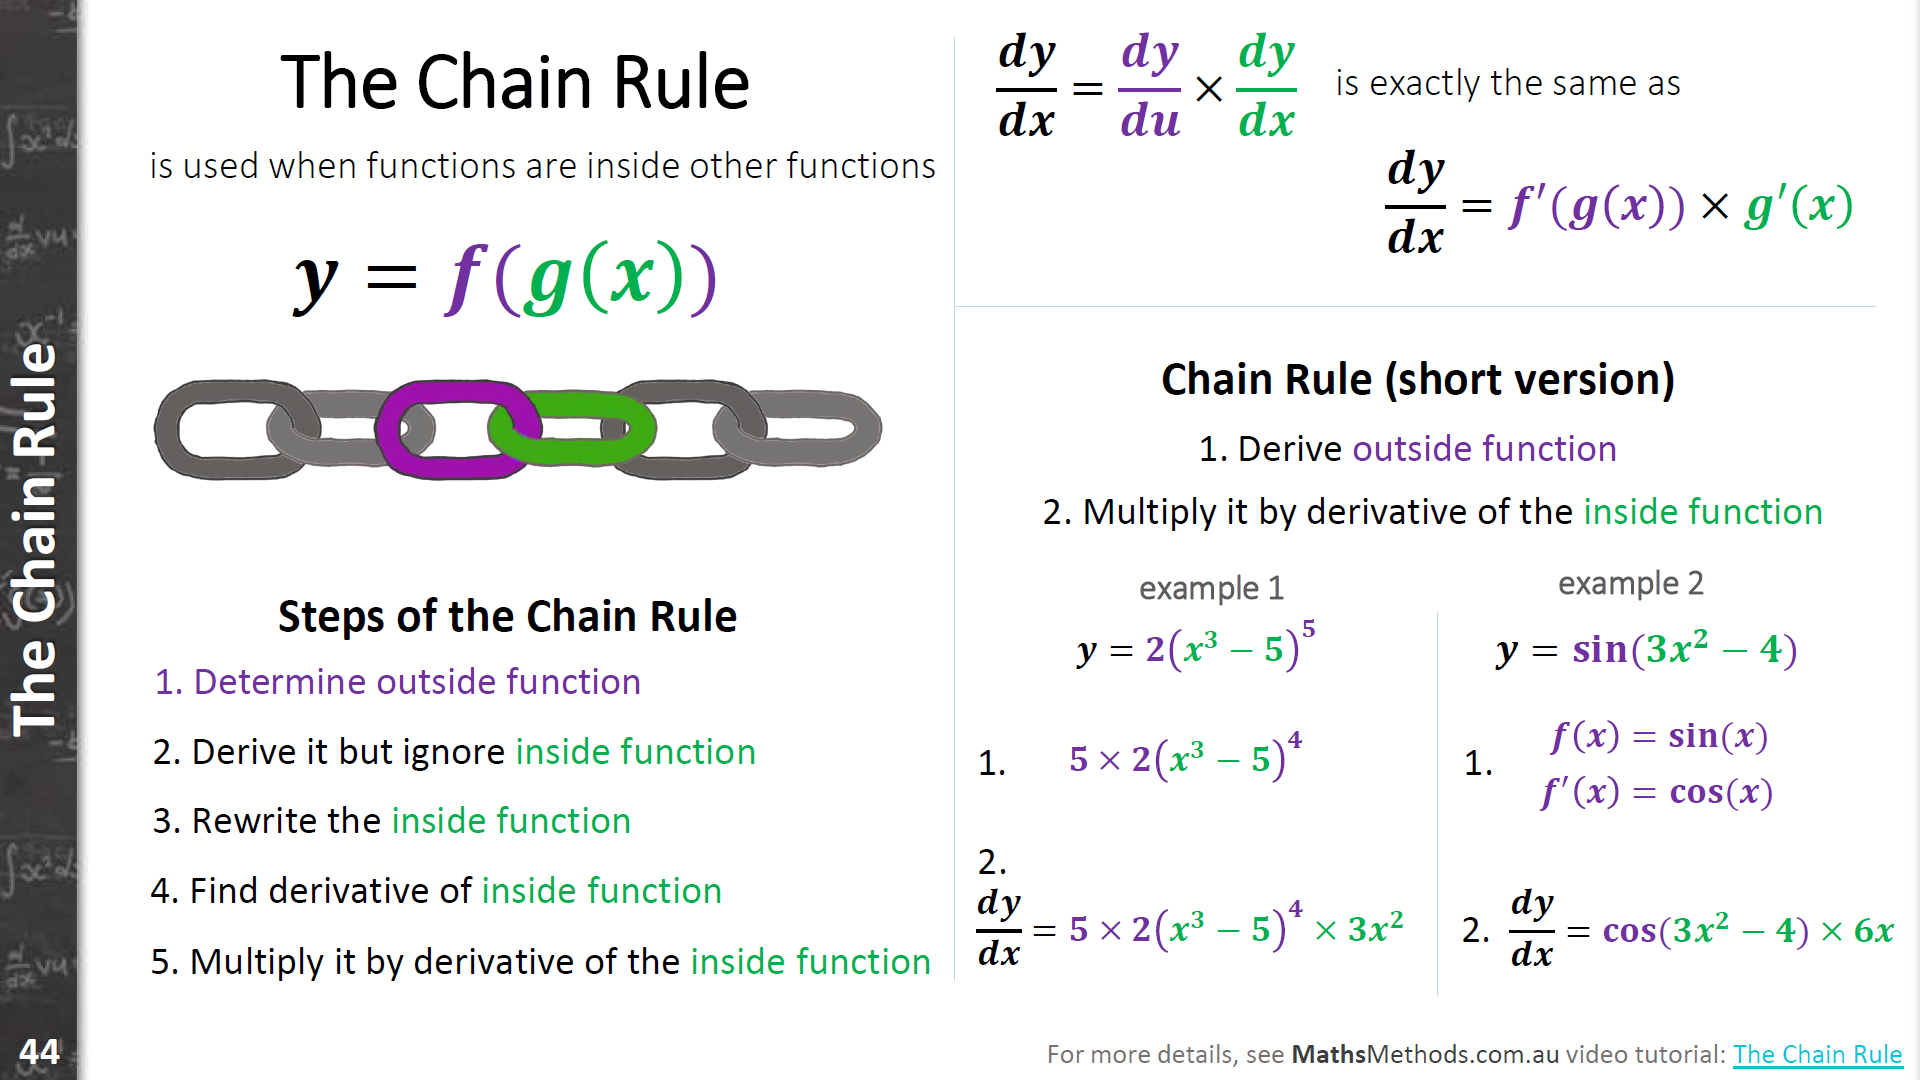 The Chain Rule In Vce Maths Methods Mathsmethods Com Au